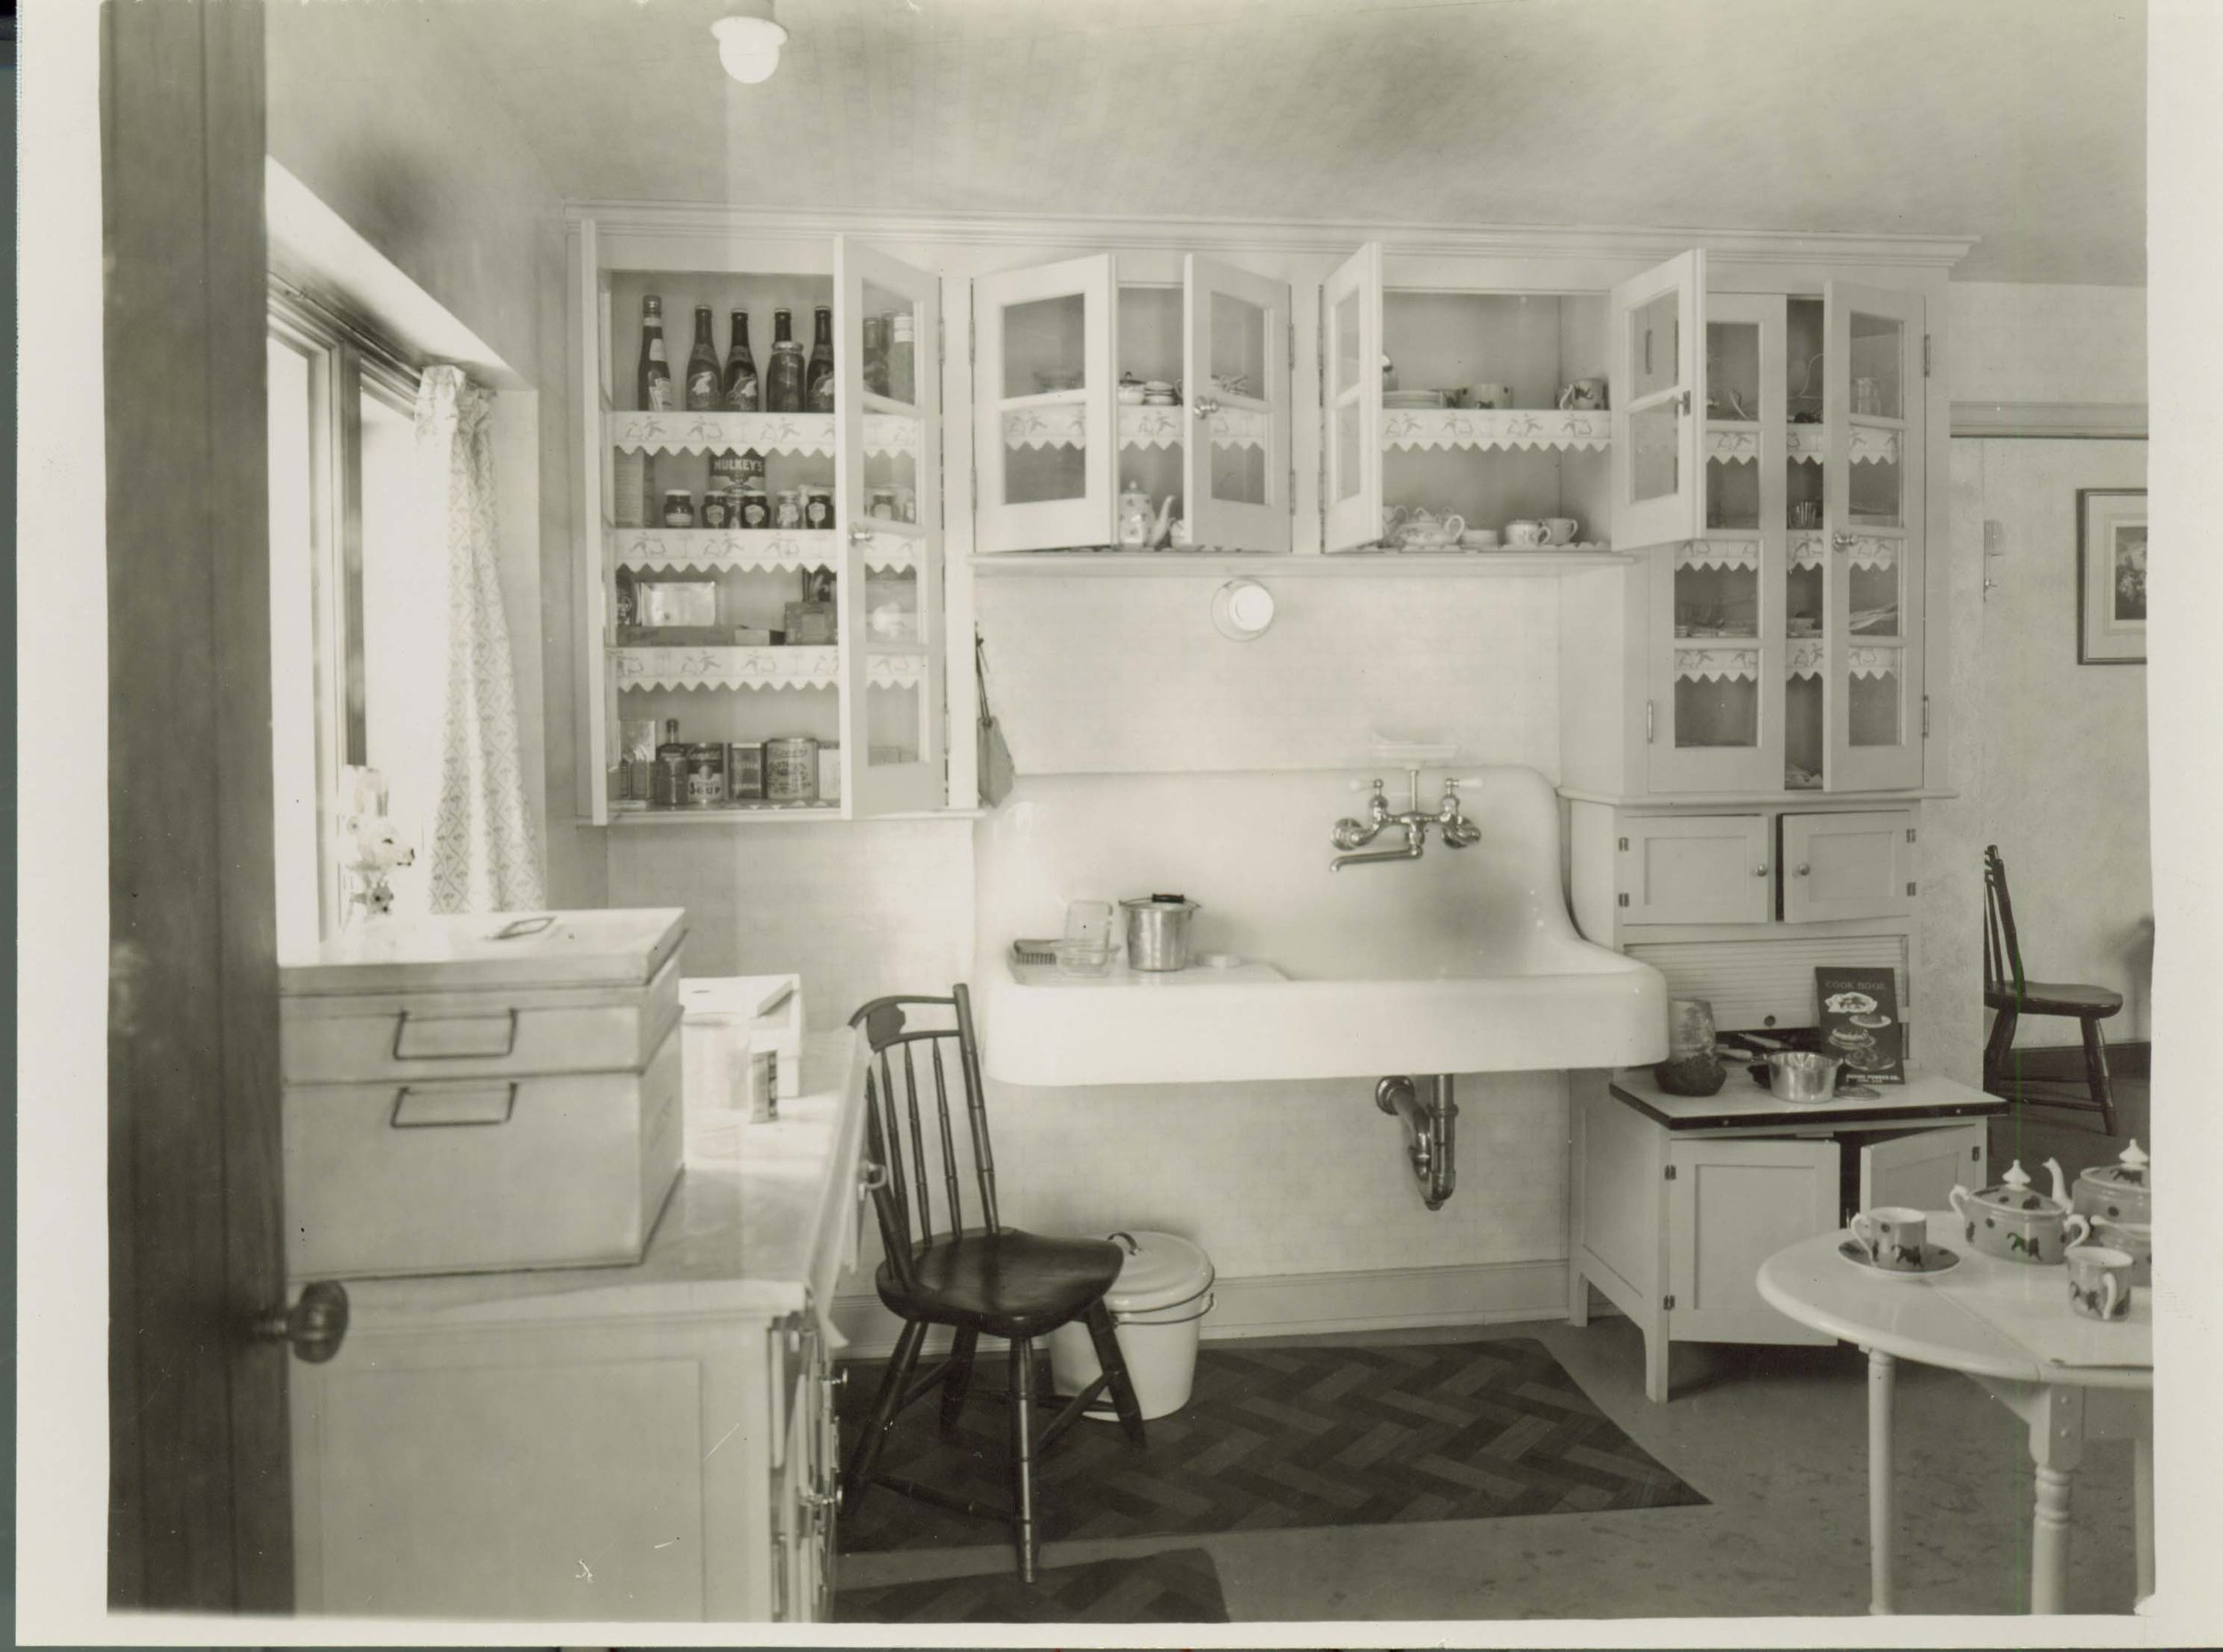 Figure 3. Knole Cottage. Kitchen, designed by William Kapp of Smith, Hinchman and Grylls, 1926. Photograph courtesy Meadow Brook Hall Archives.